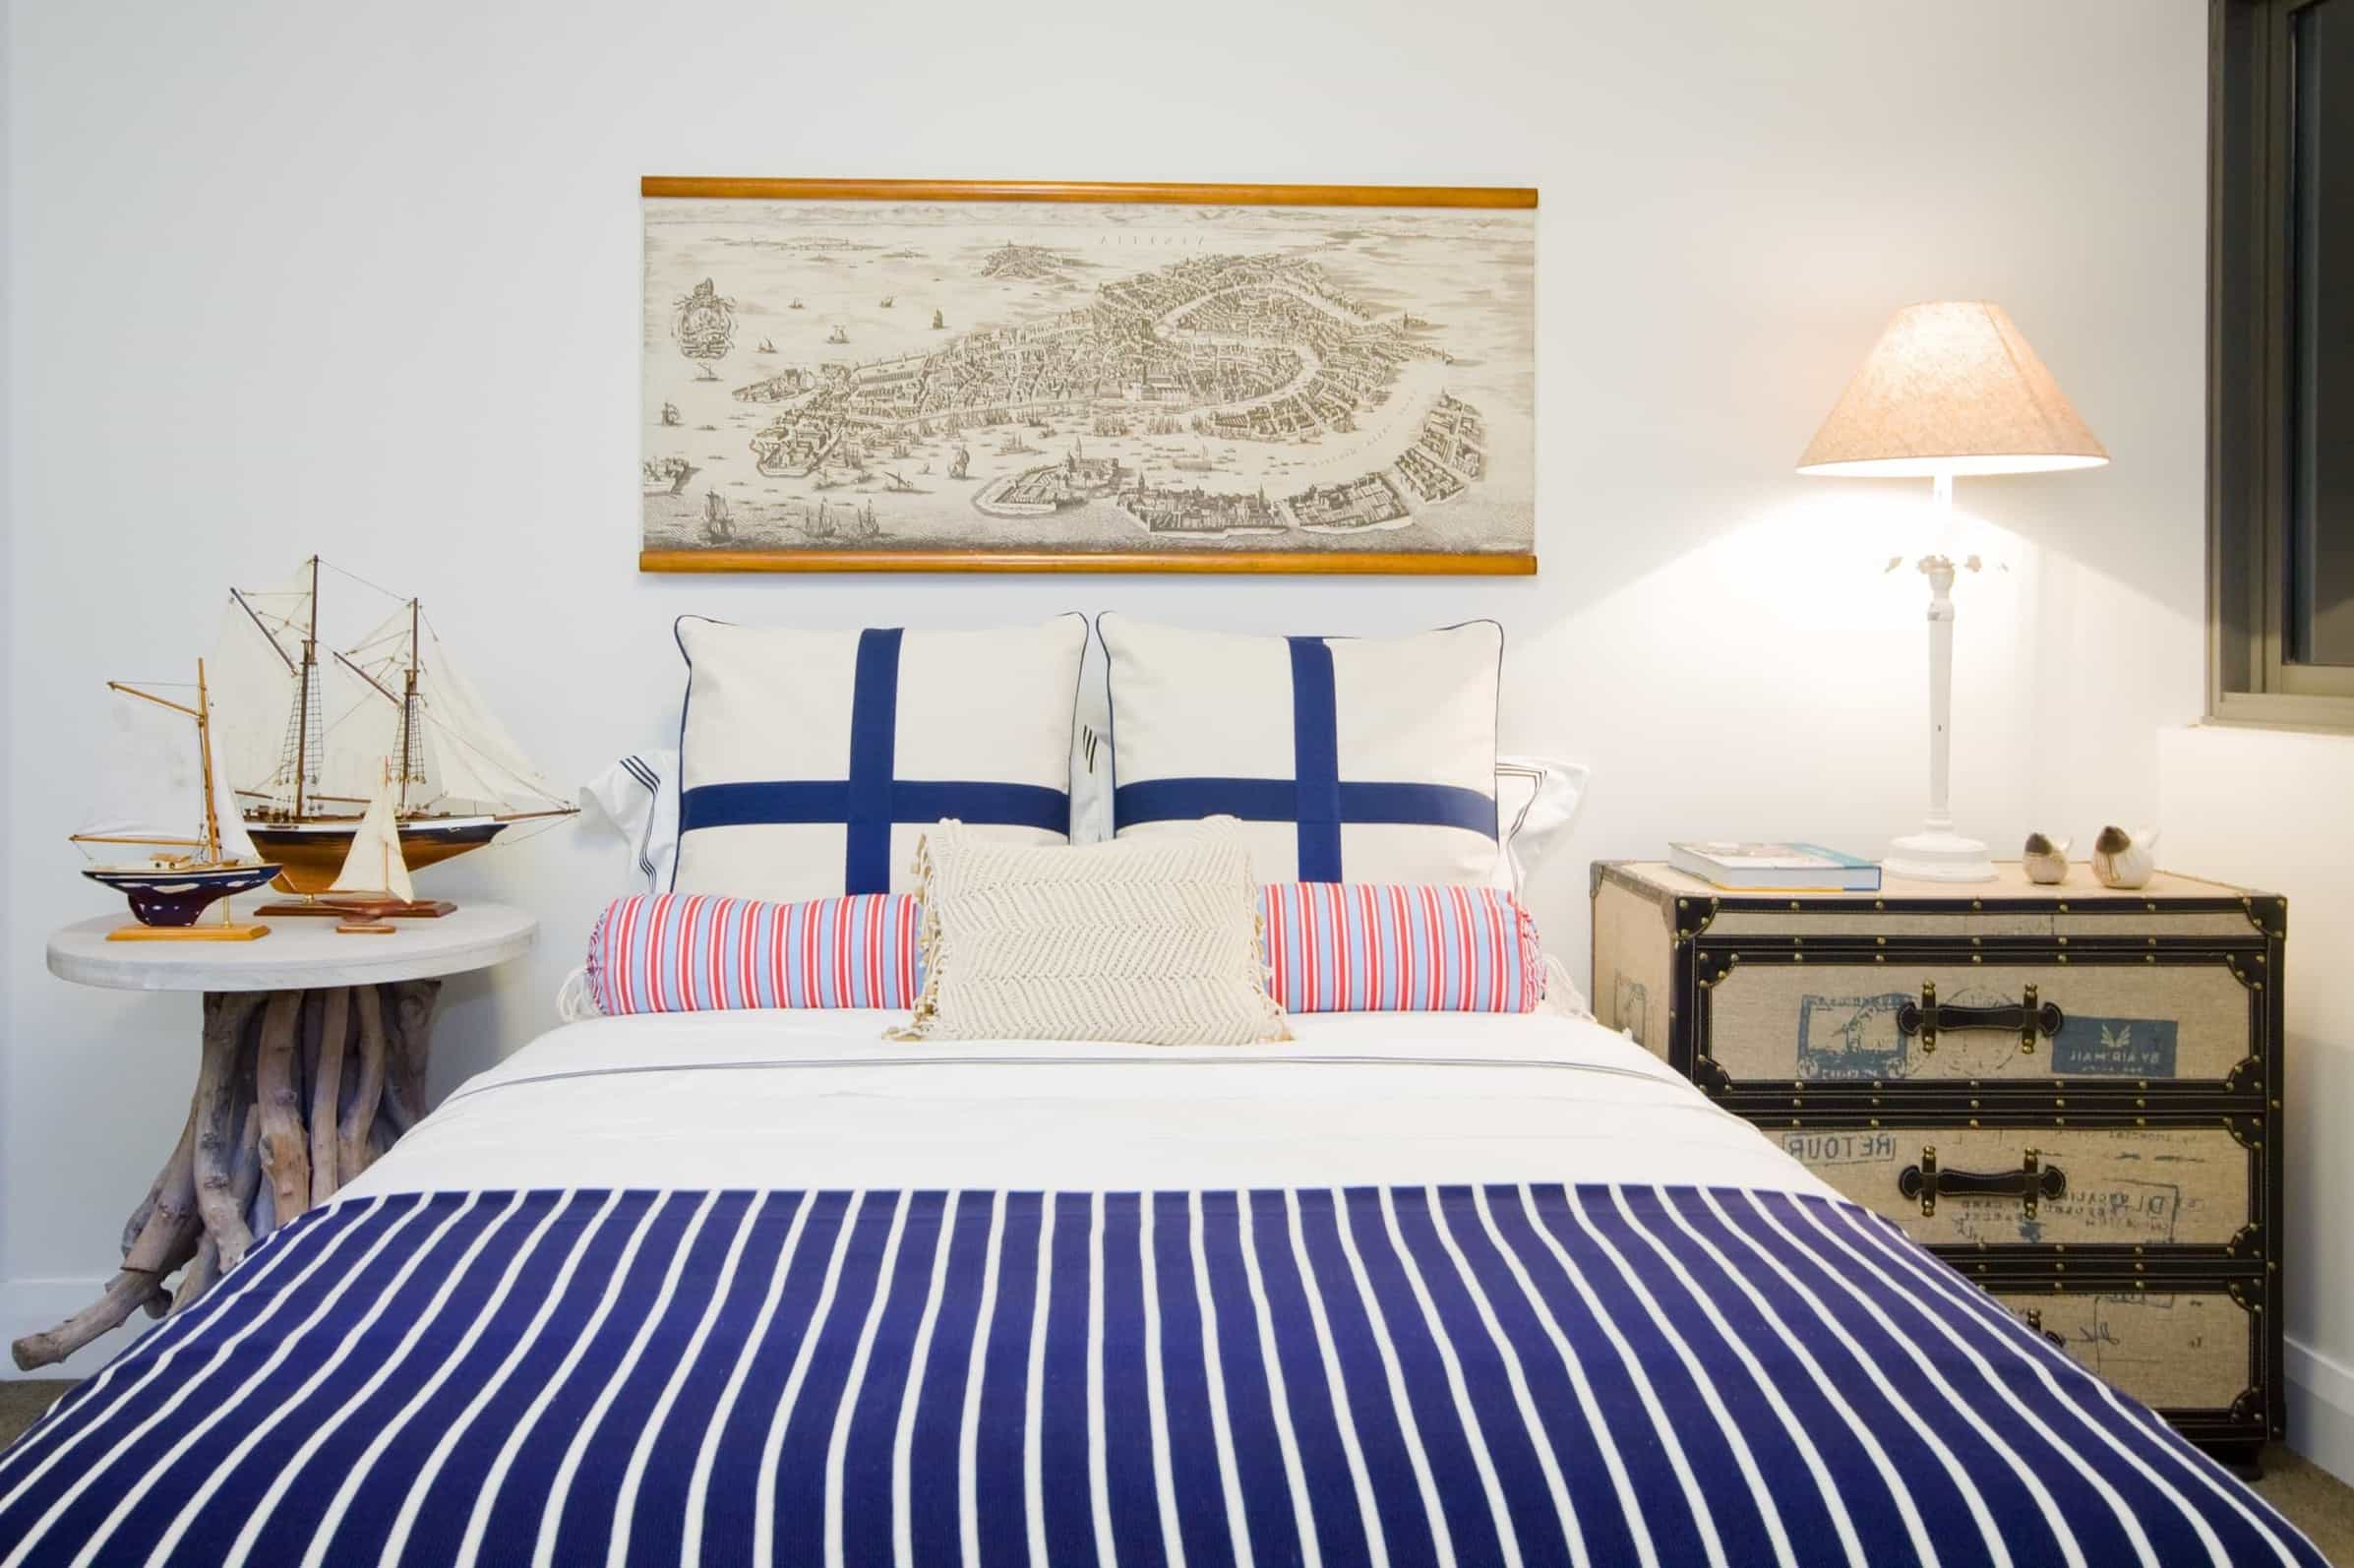 Featured Image of Navy And White Nautical Bedroom With Striped Duvet Cover